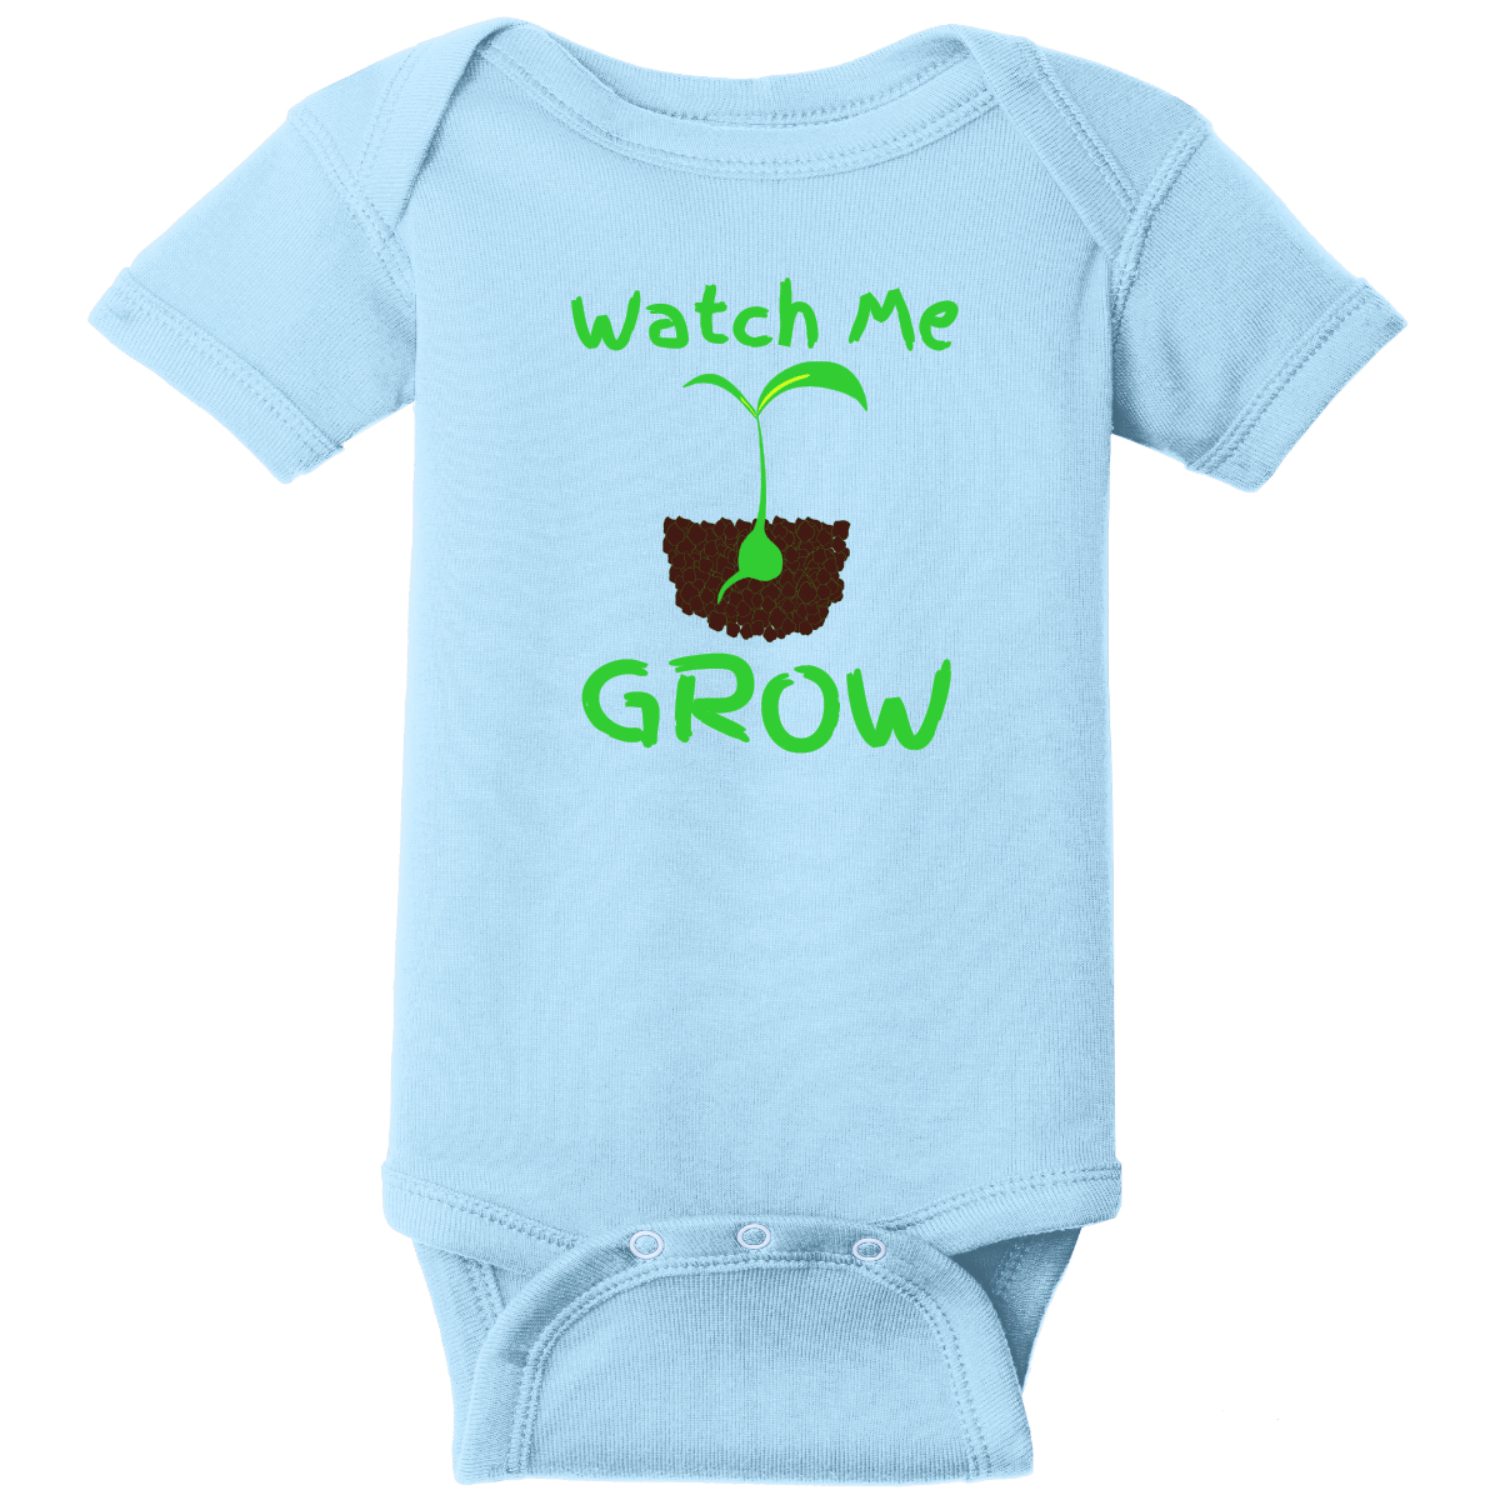 Watch Me Grow Infant Creeper Light Blue Rabbit Skins Infant Short Sleeve Infant Rib Bodysuit RS4400